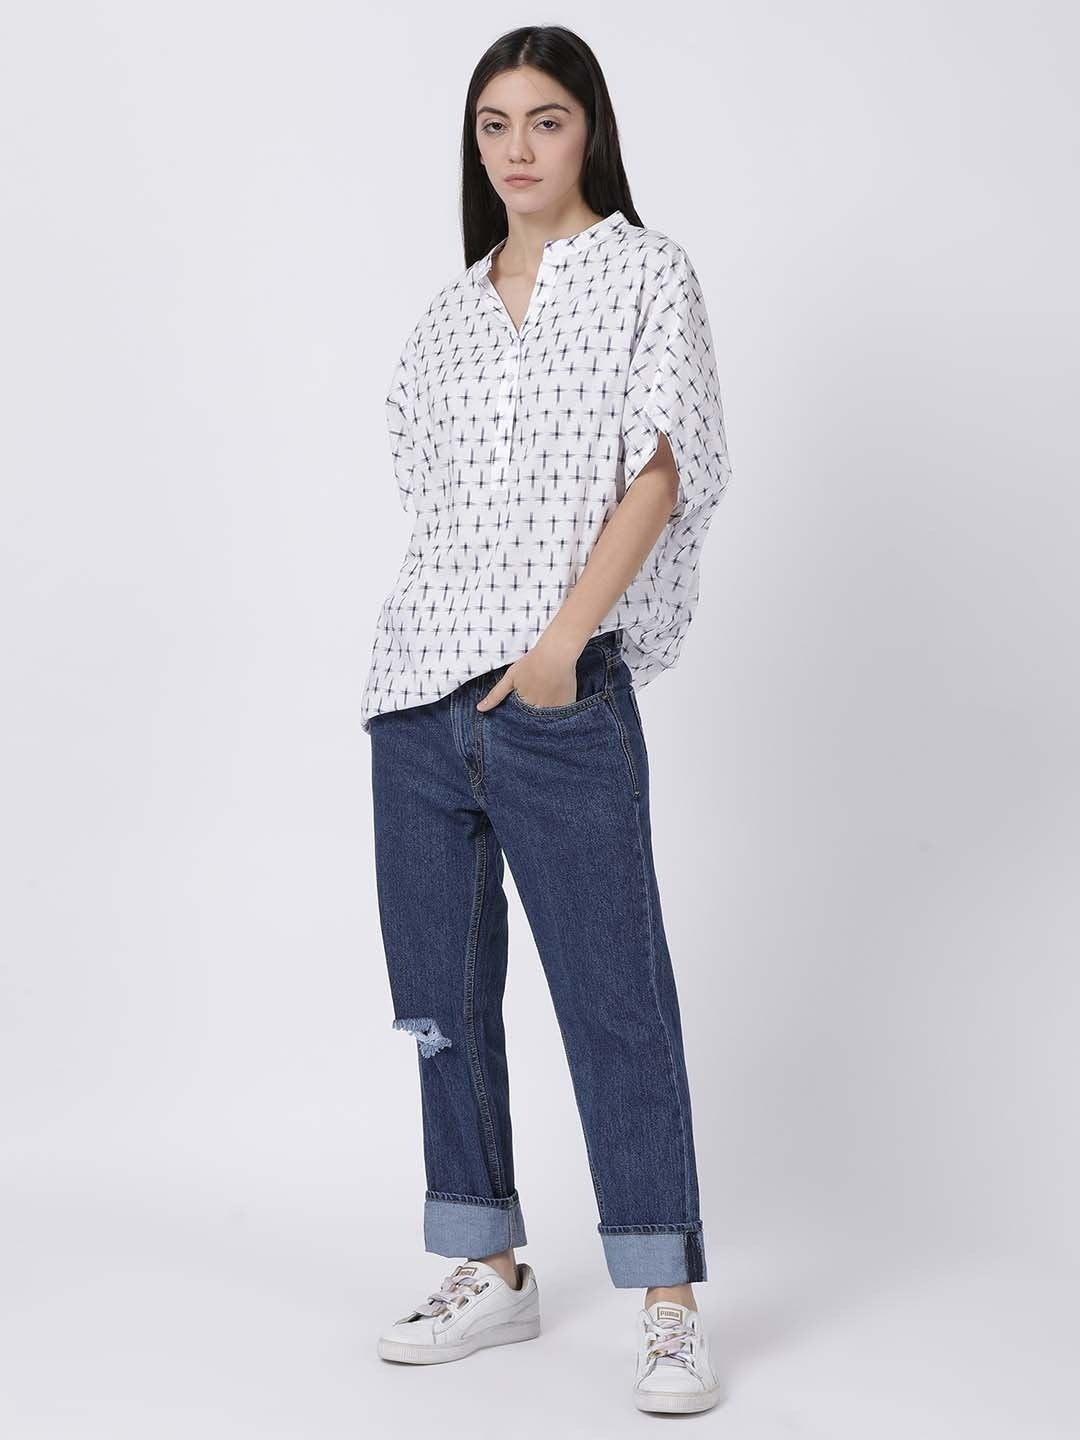 Cambric White Kimono Top With Navy Blue Cross Weave - Rossbelle